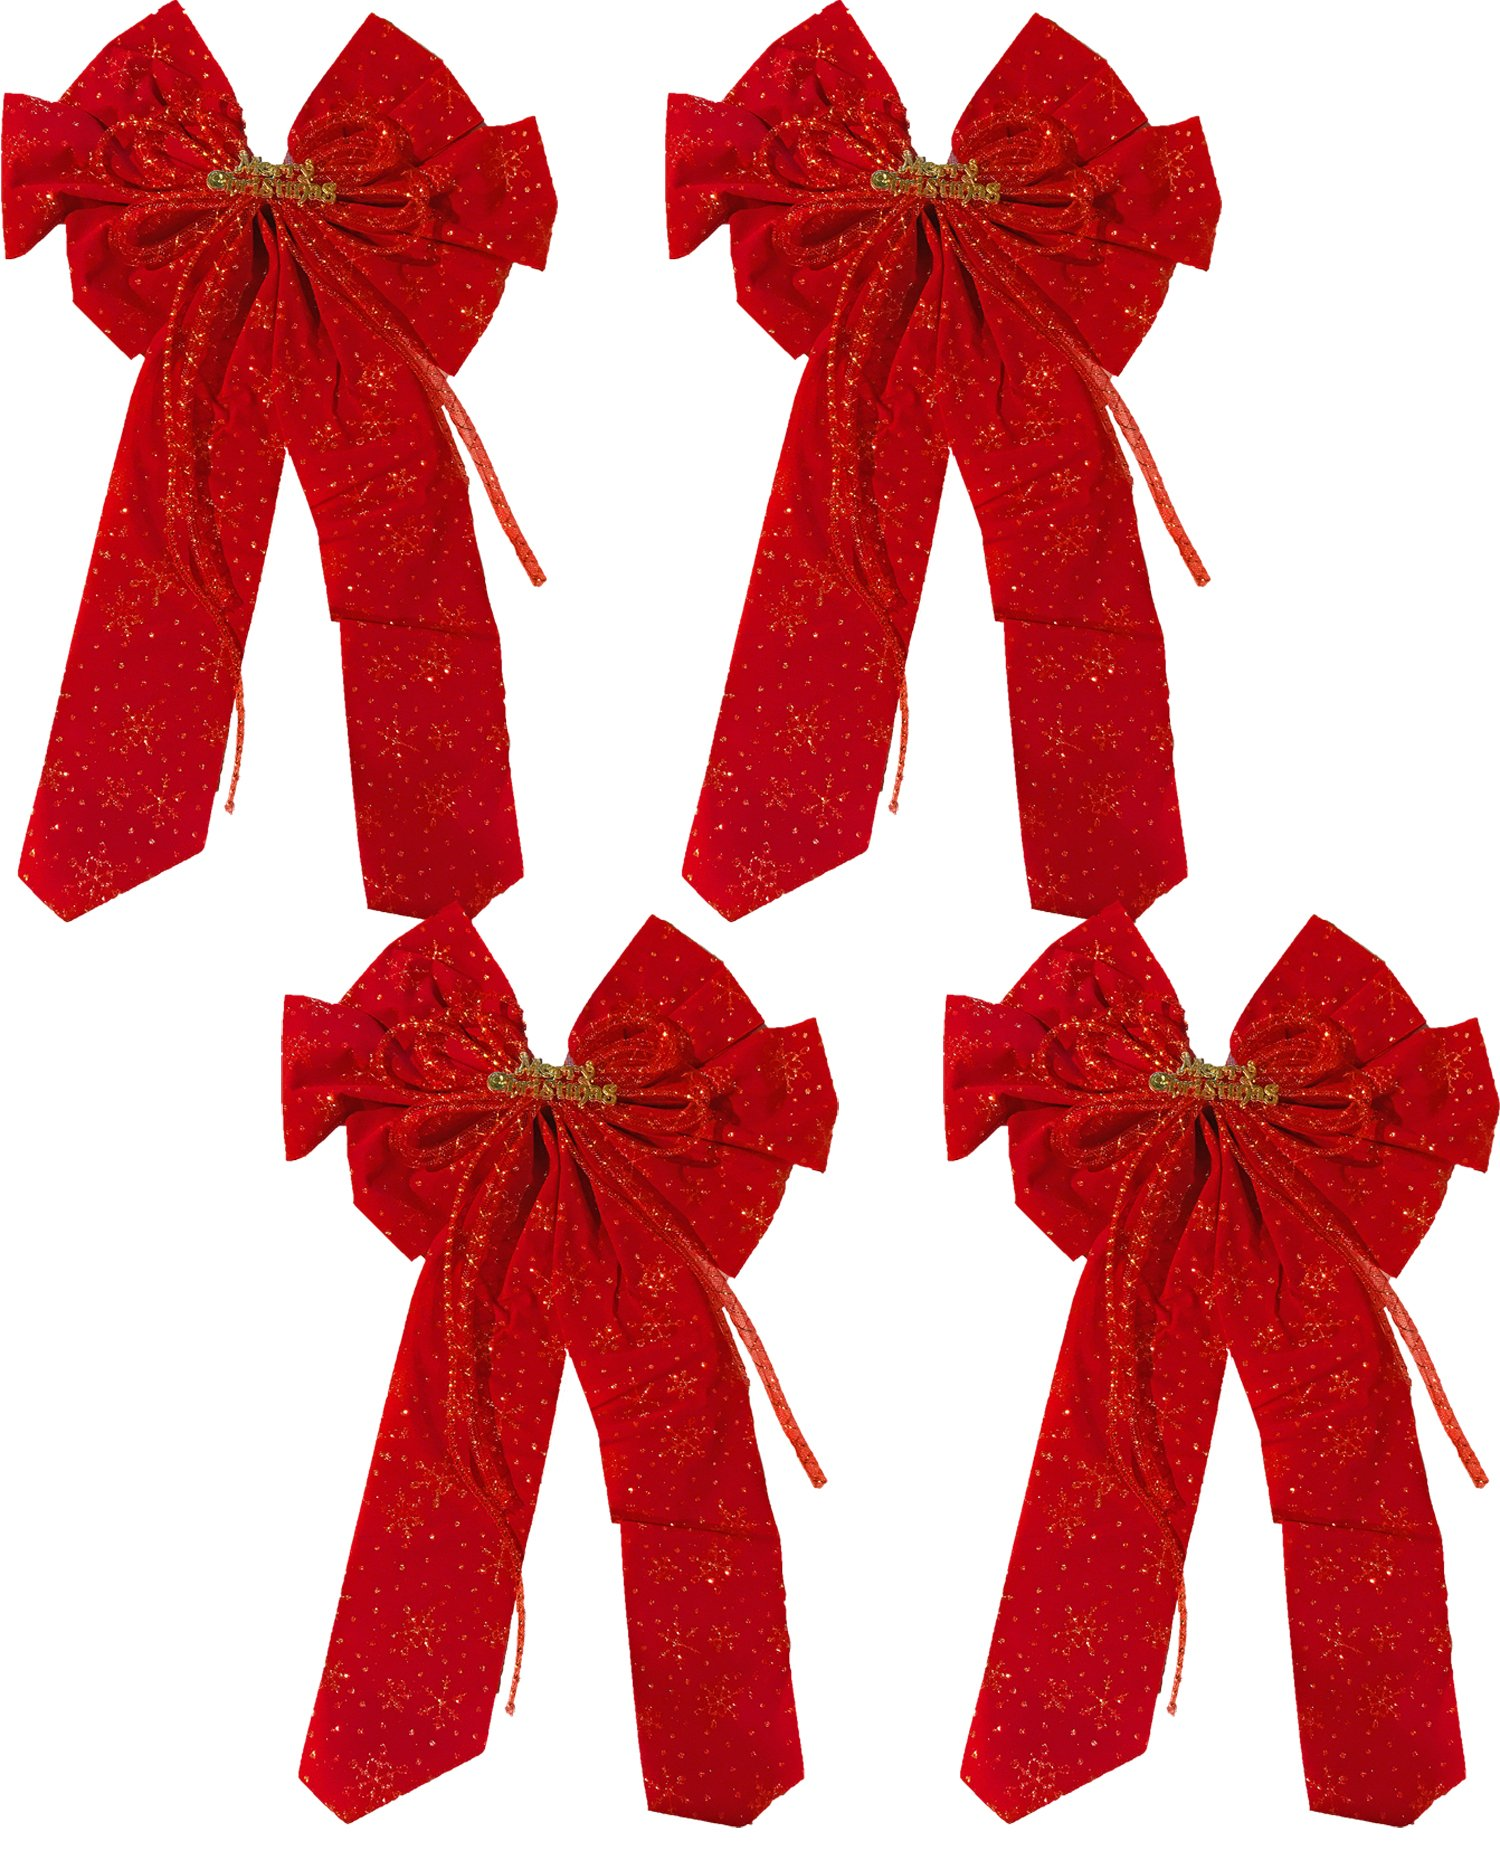 25'' x 9'' Red Velvet Bow ''Merry Christmas'' With Glitter Snowflake Print (4 Bows)